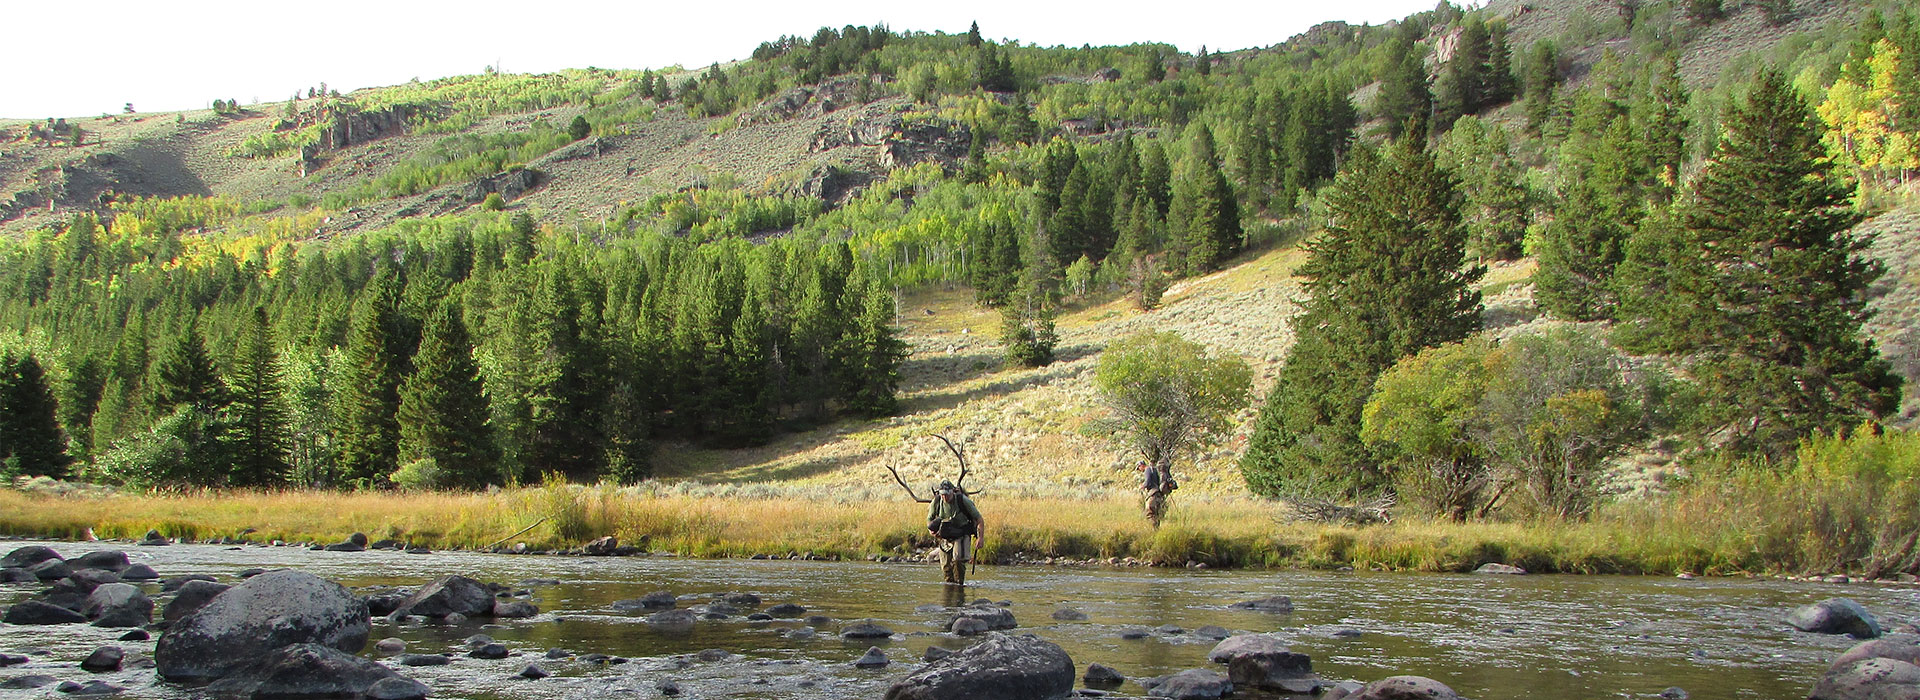 Beaver Trap Outfitters Trip Planner